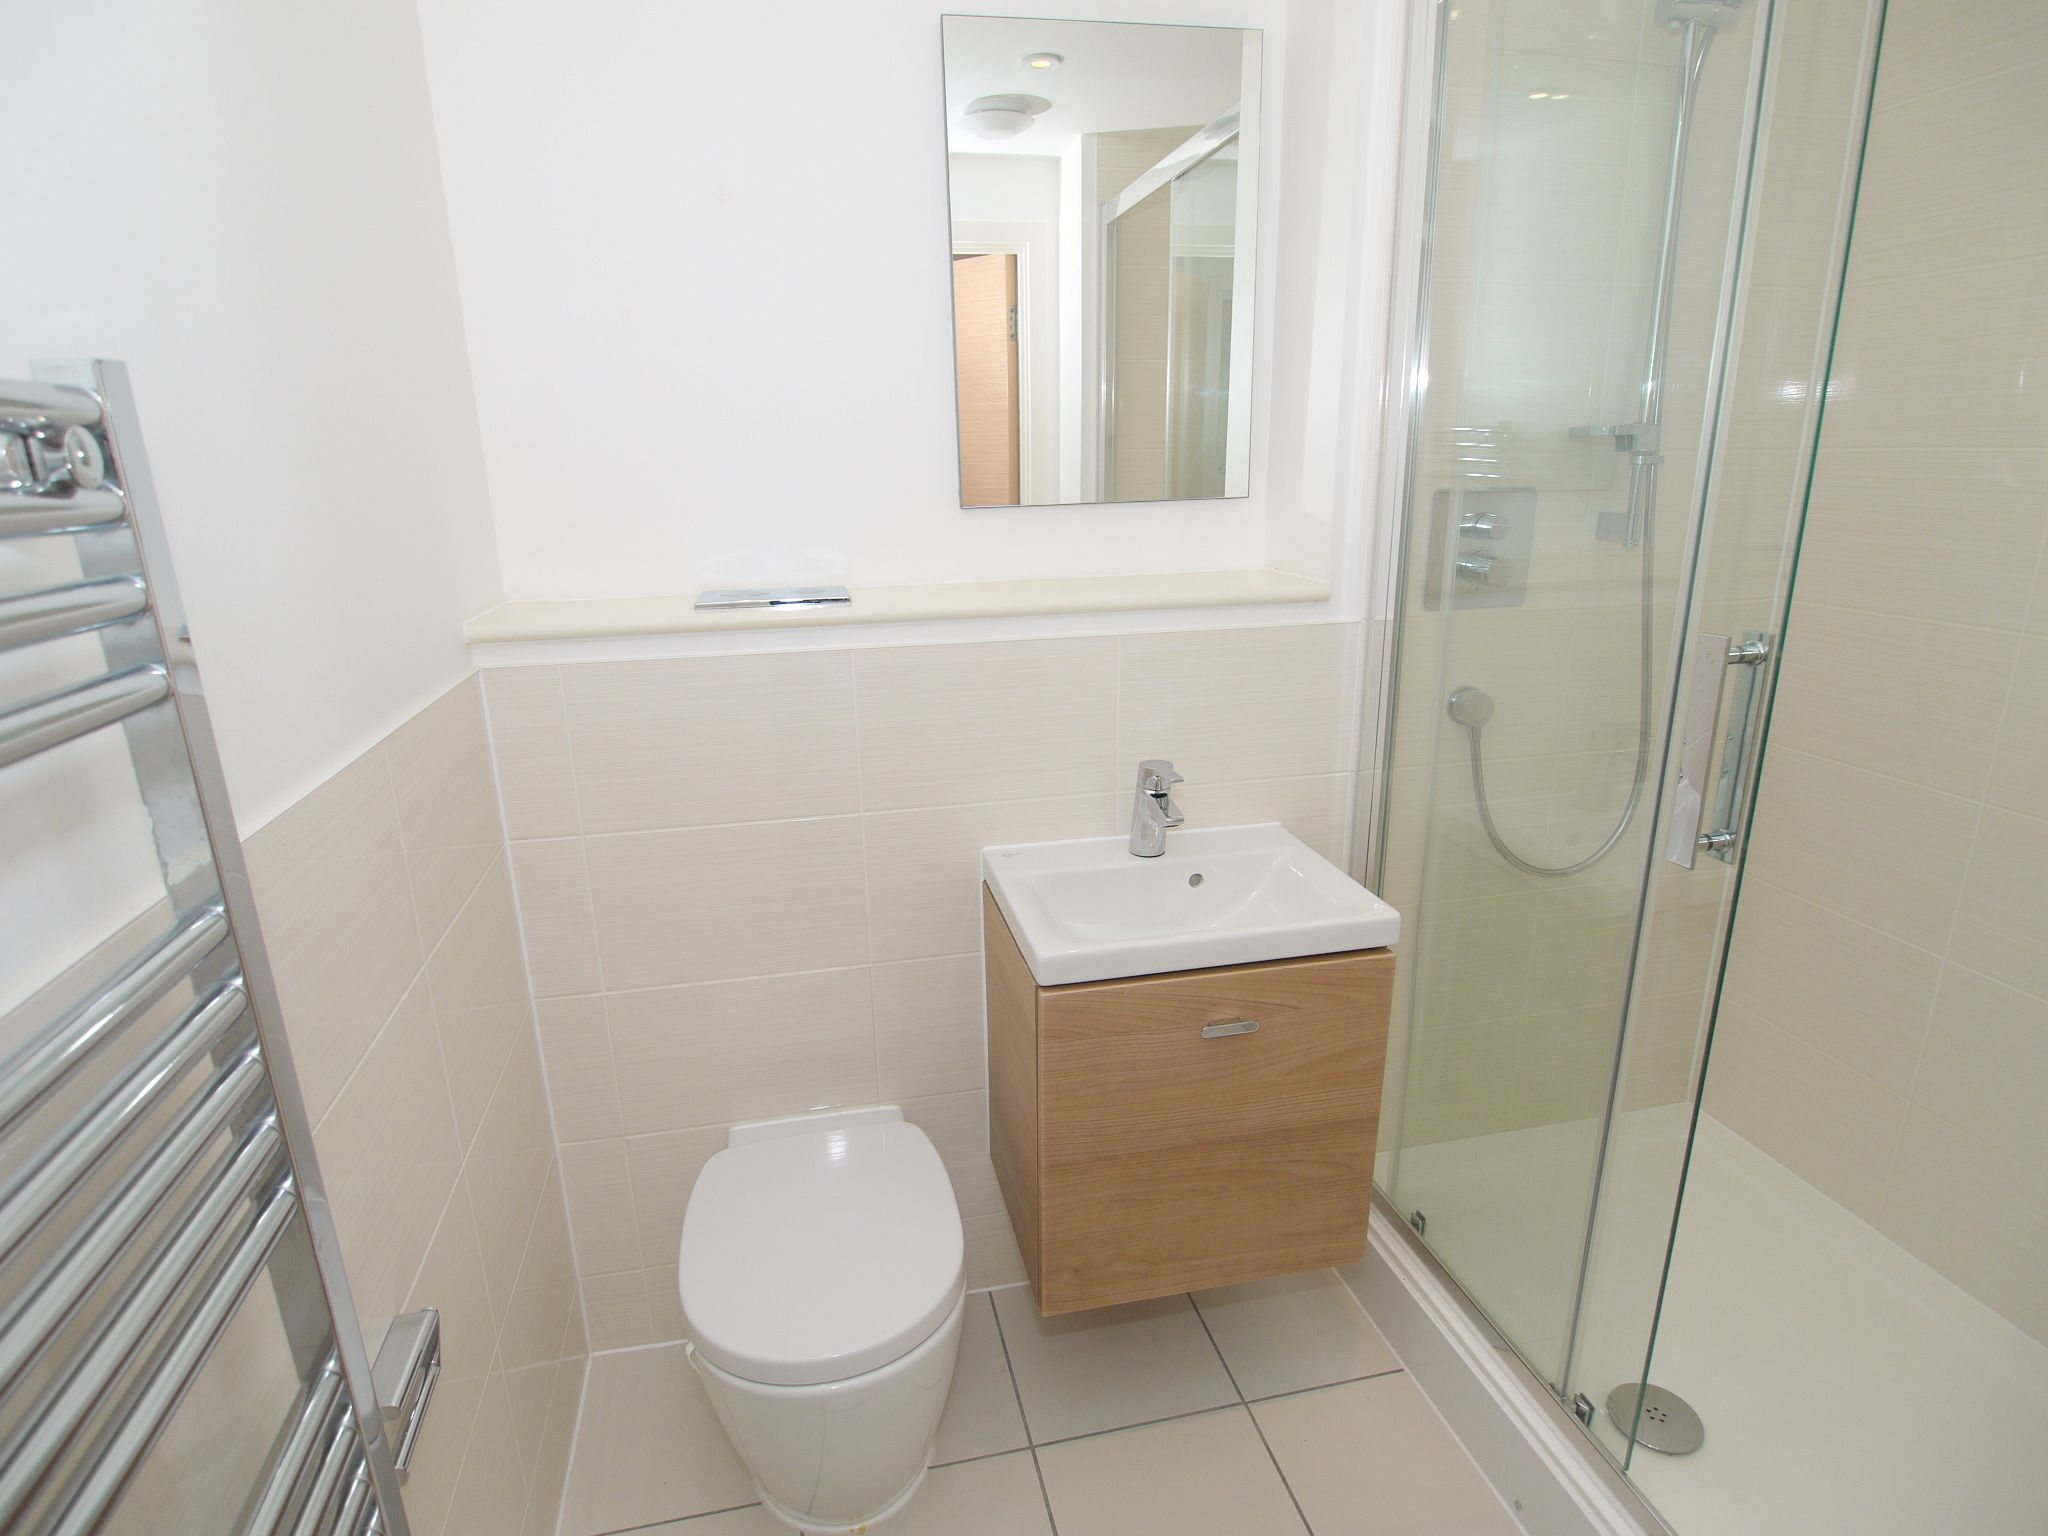 2 bedroom apartment For Sale in Sevenoaks - Photograph 9